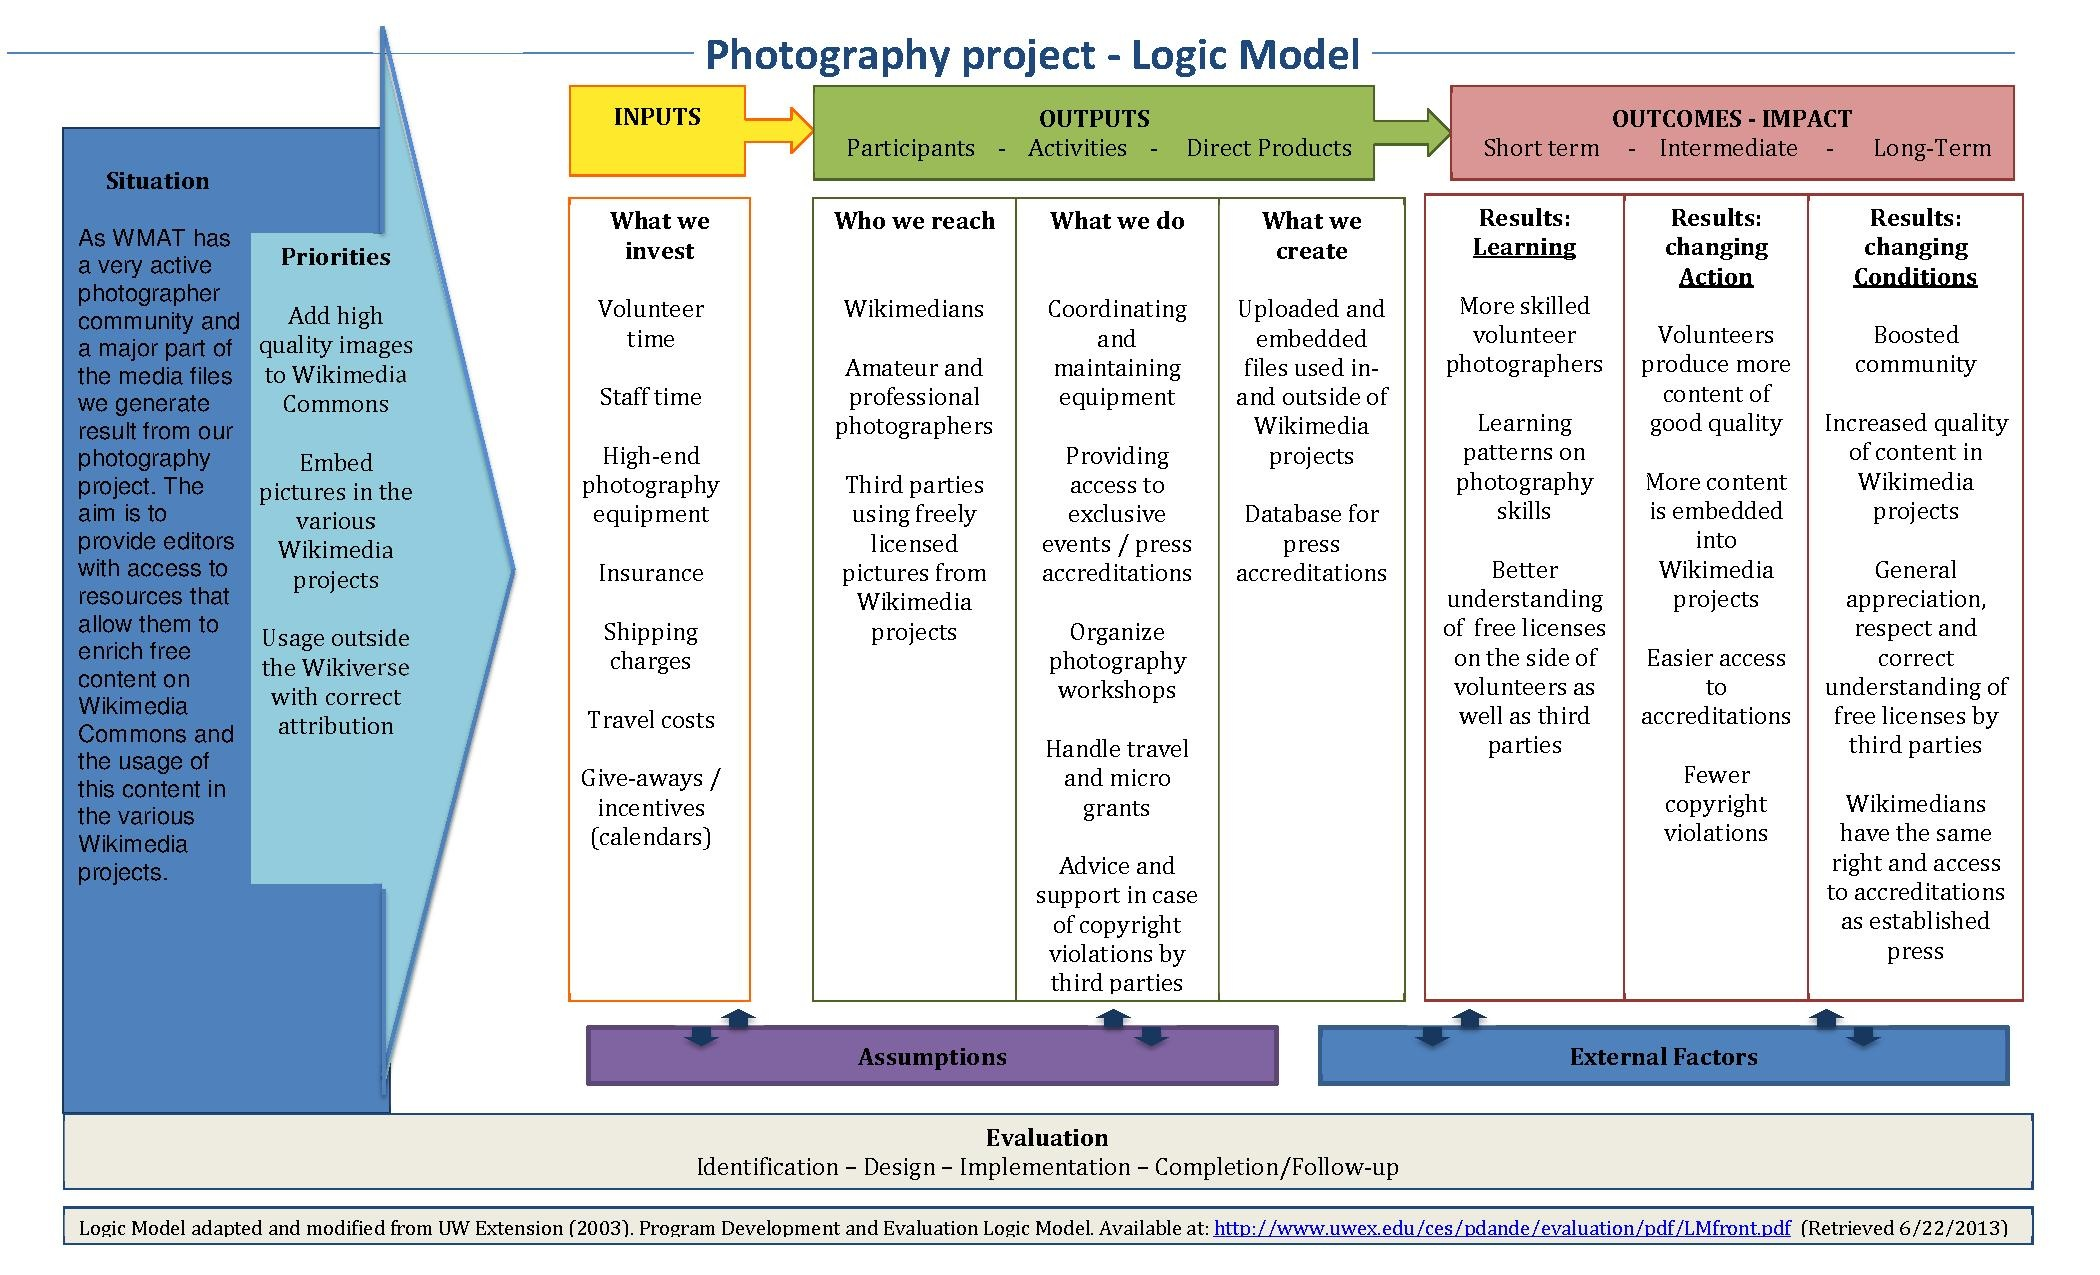 FileLogic Model Photography Projectpdf Wikimedia Commons